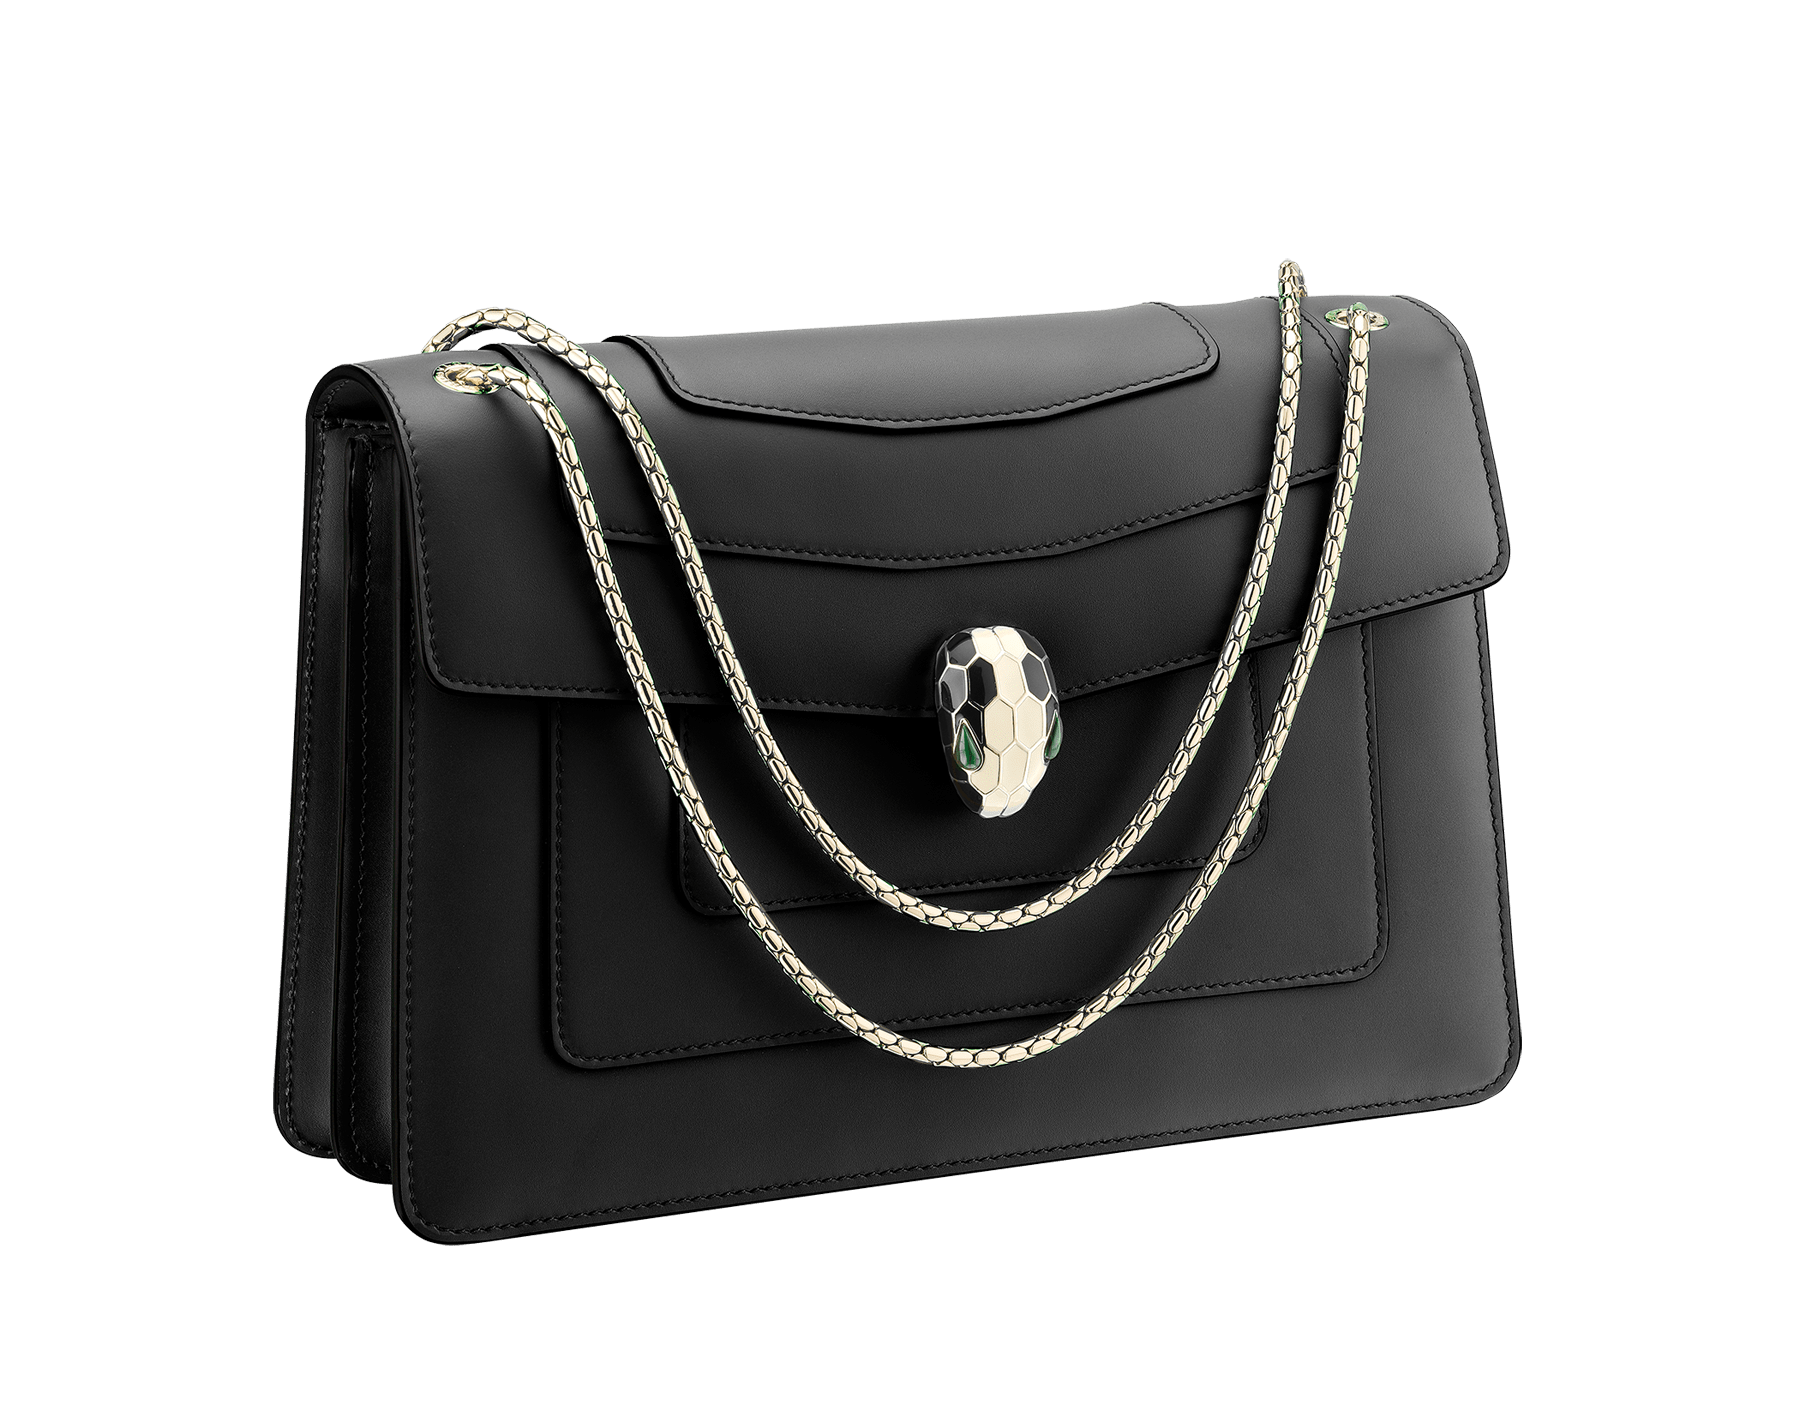 Black calf leather shoulder bag with brass light gold plated black and white enamel Serpenti head closure with malachite eyes. 521-CLa image 2